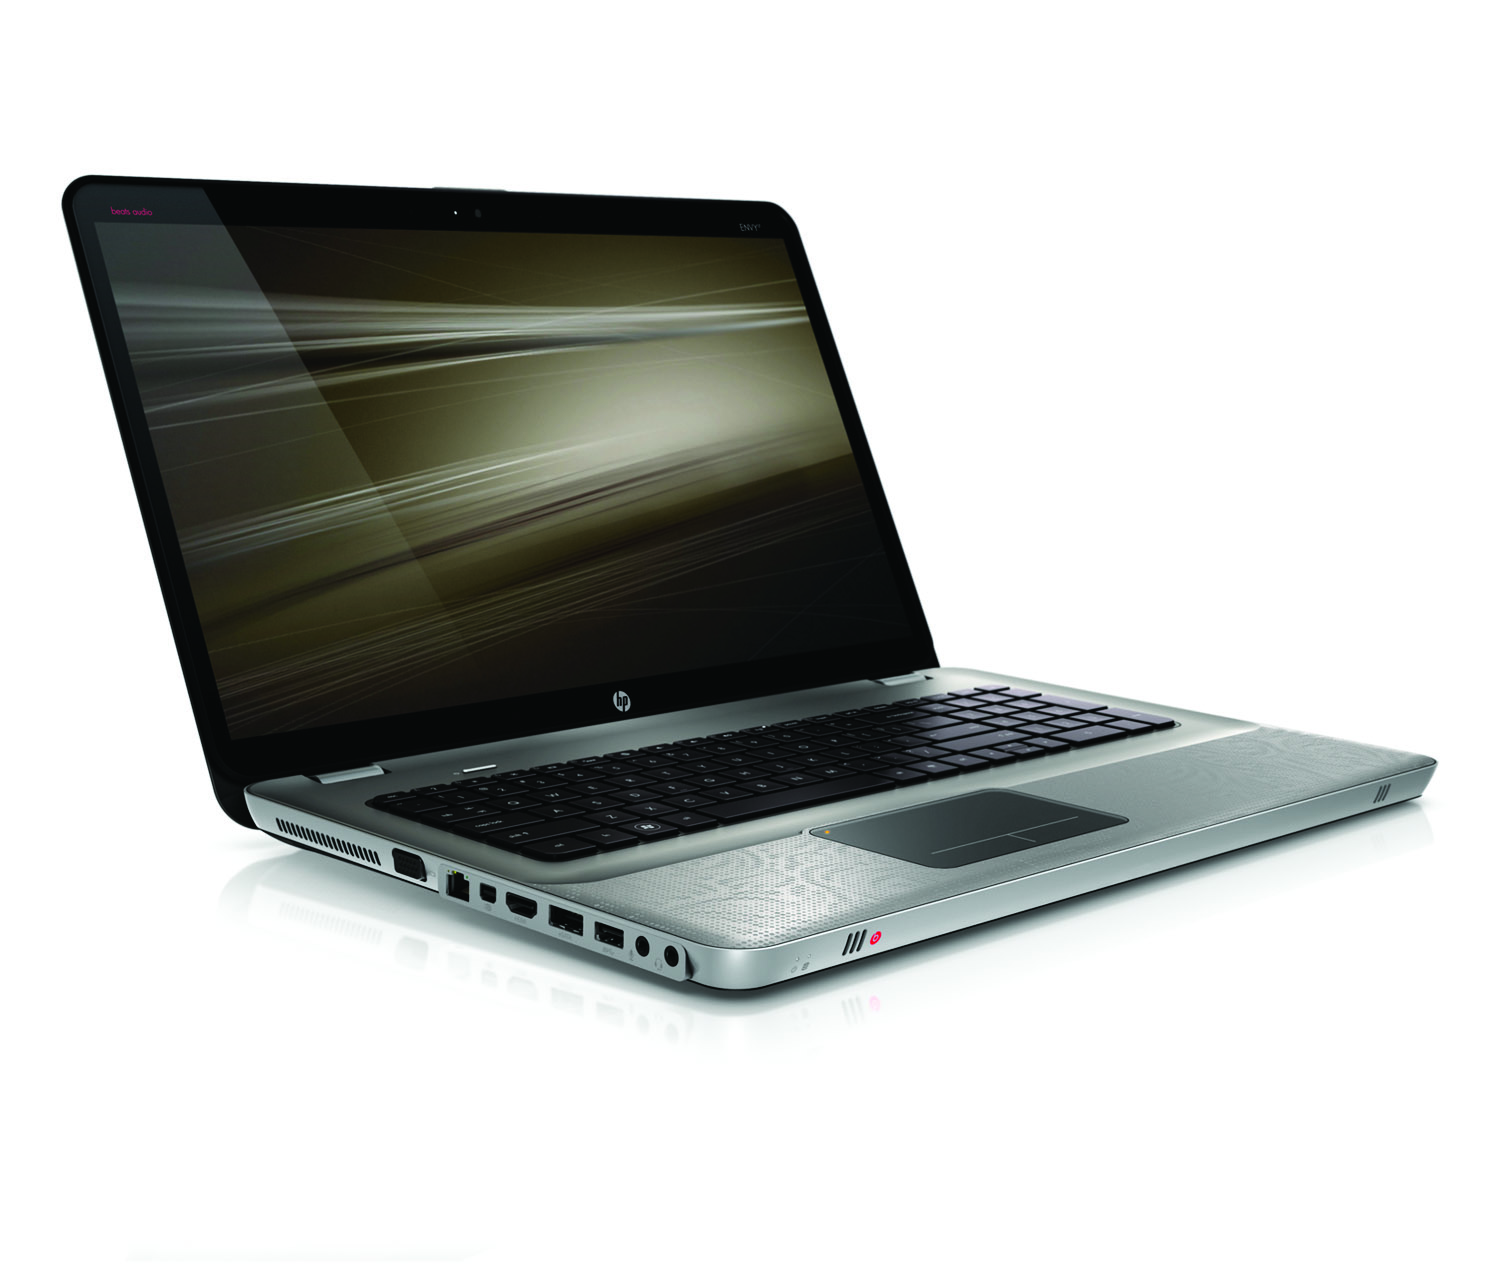 HP Envy 17, front right open on white